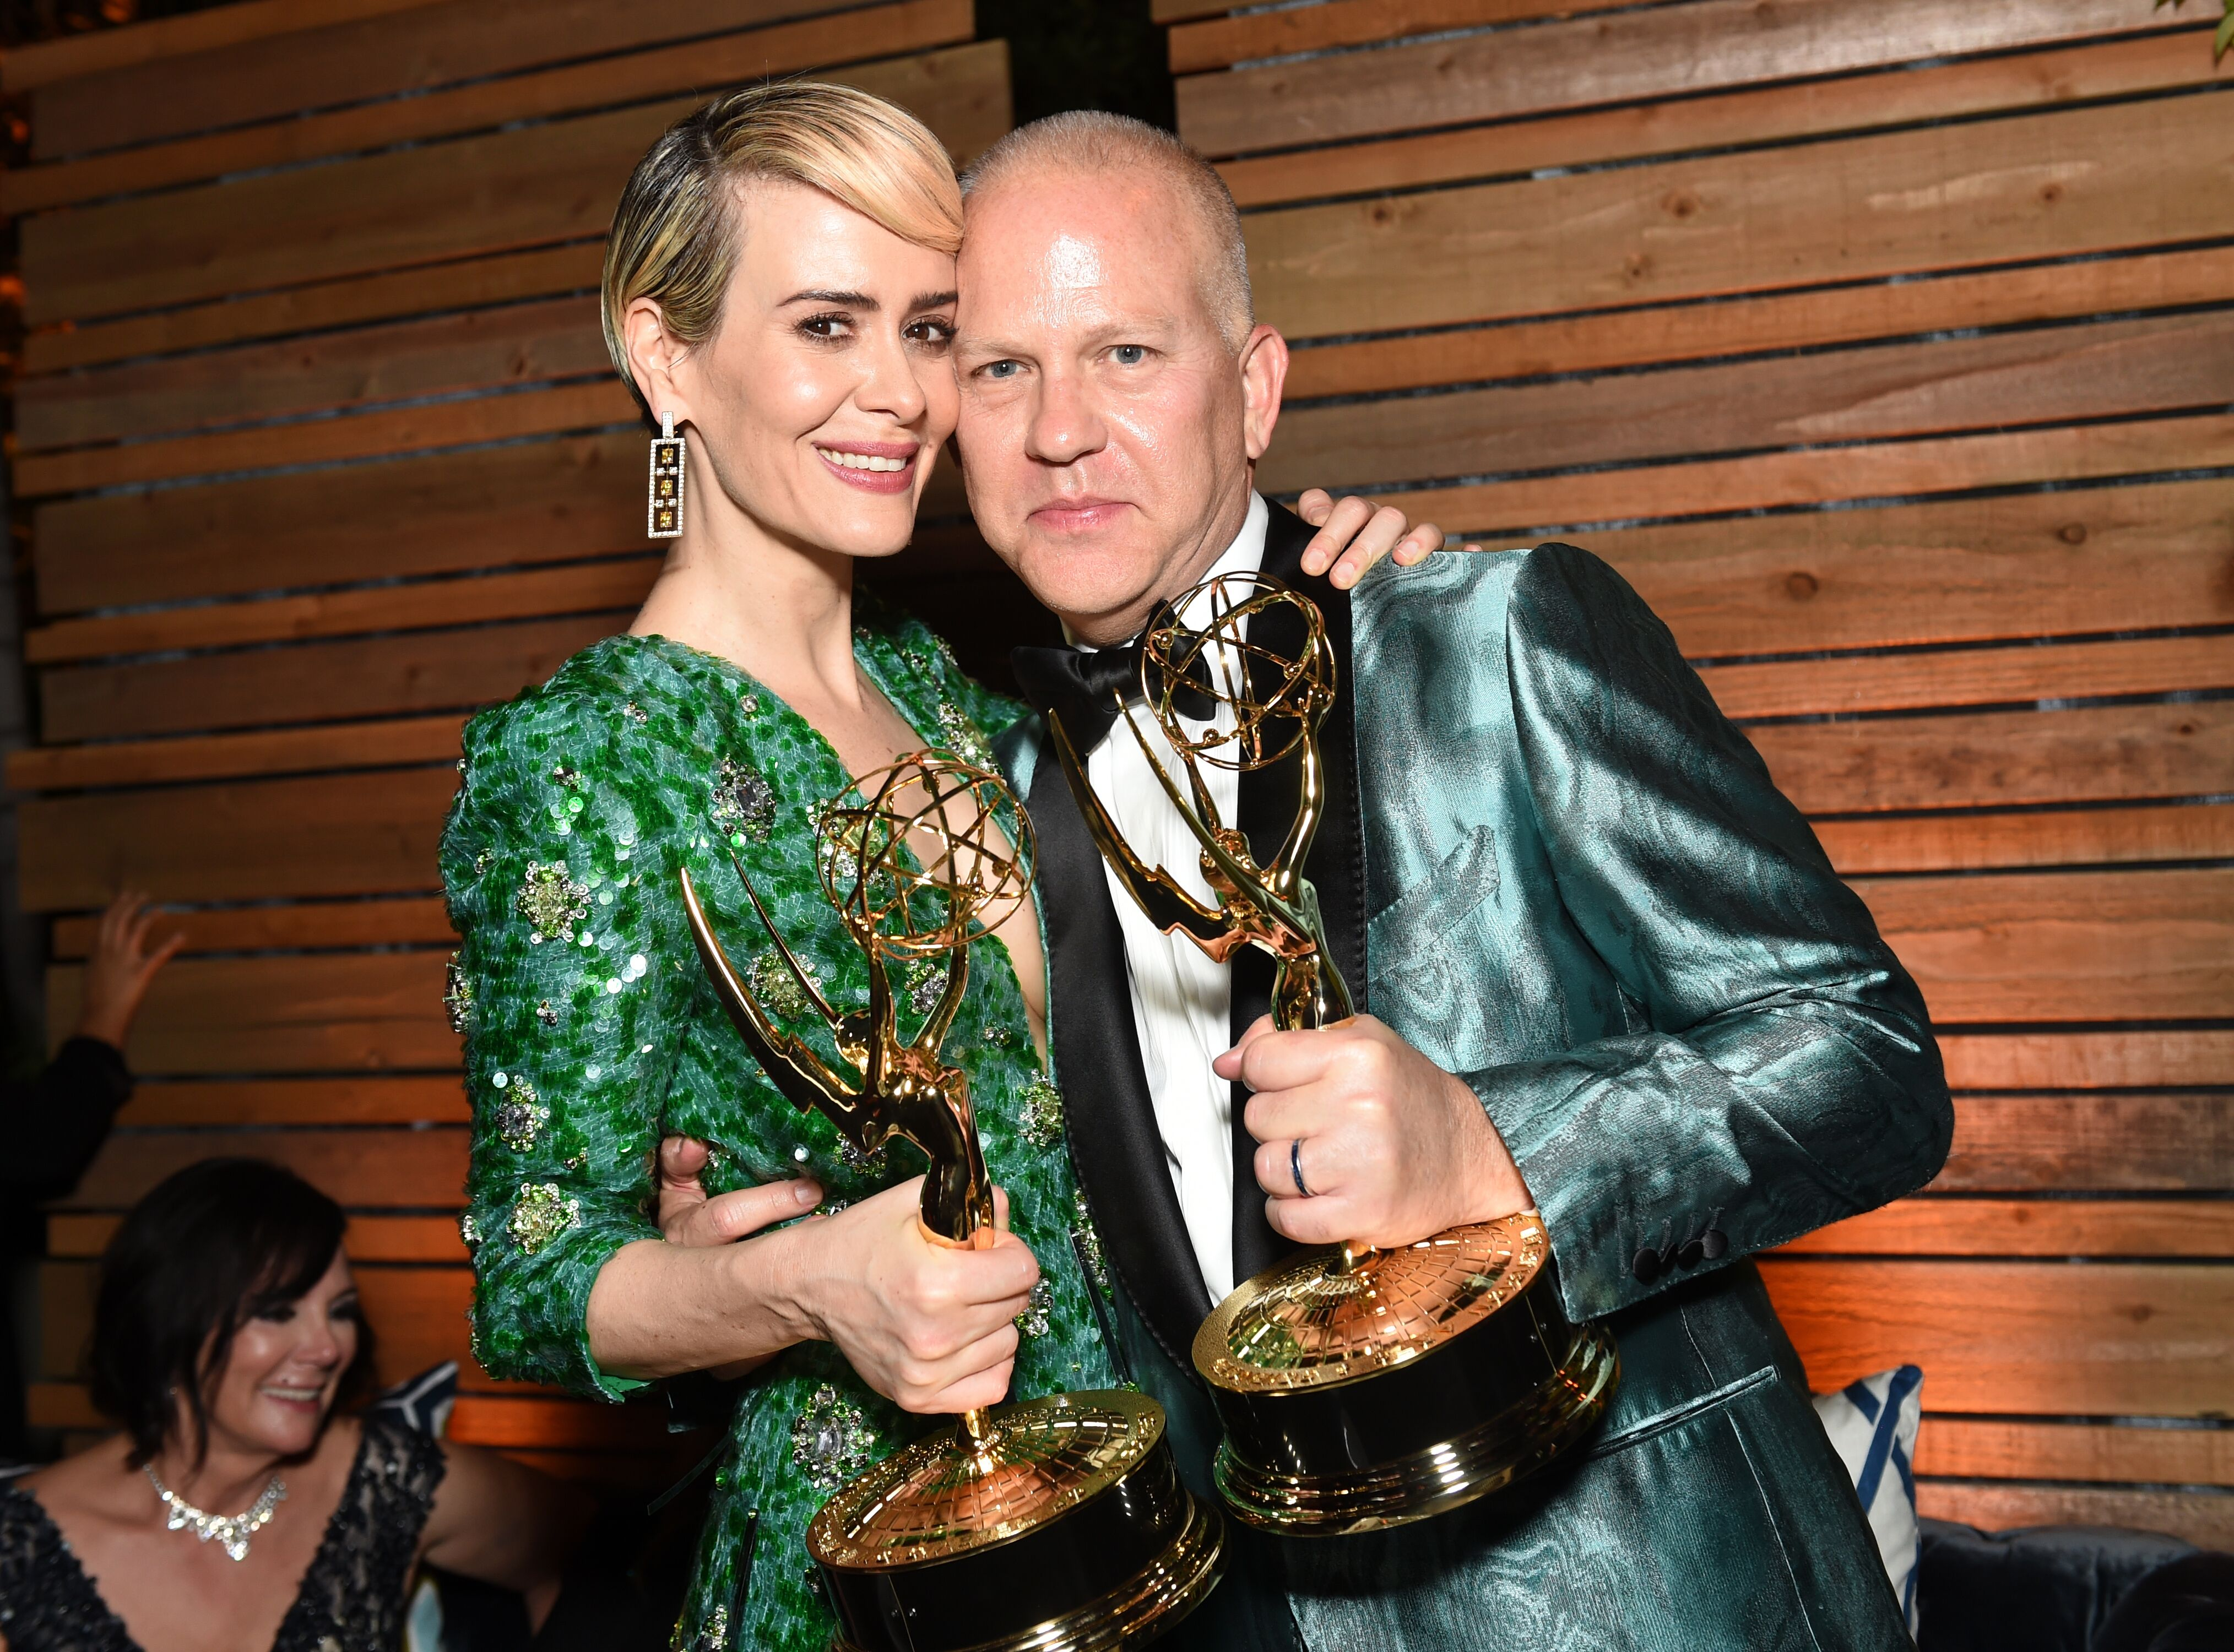 Sarah Paulson and Ryan Murphy attends the FOX Broadcasting Company, FX, National Geographic And Twentieth Century Fox Television's 68th Primetime Emmy Awards. | Source: Getty Images